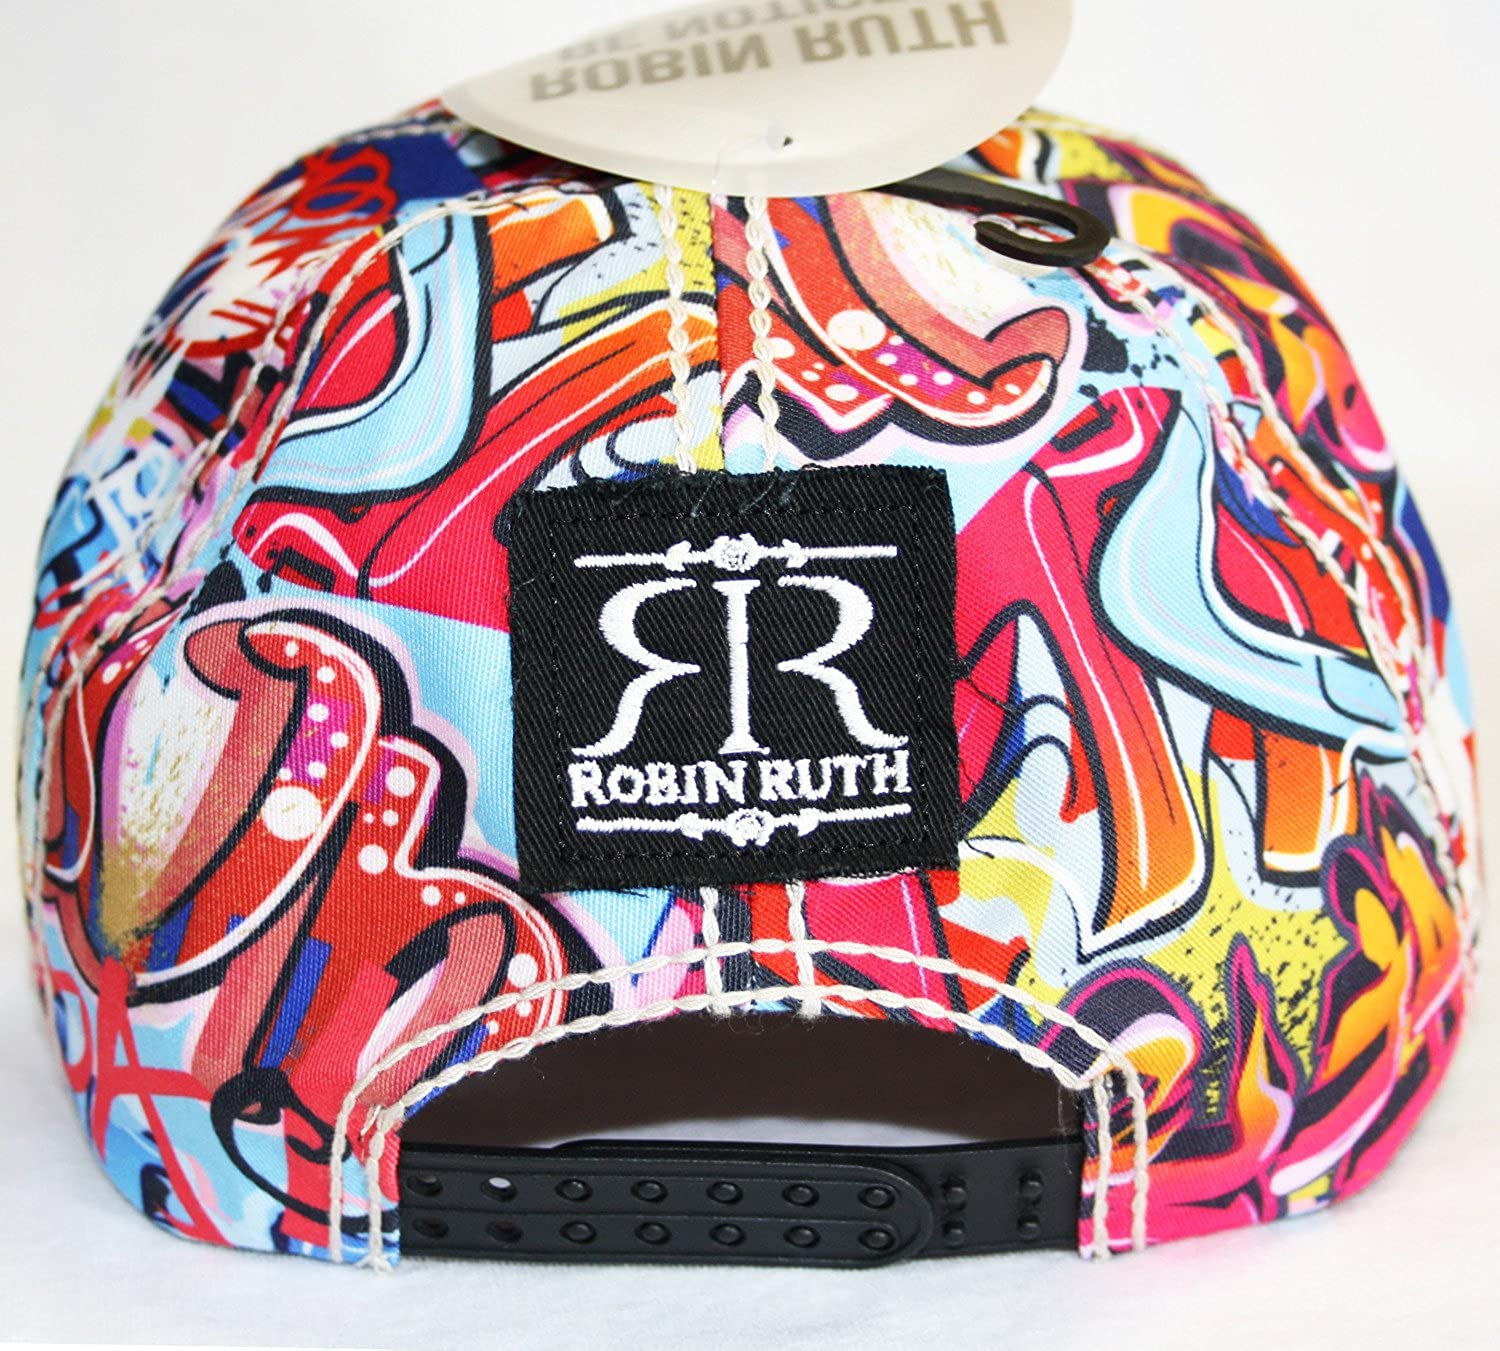 d6db1c2c41d Robin Ruth Canada Graffiti Baseball Cap Adjustable Hat  Amazon.ca  Clothing    Accessories